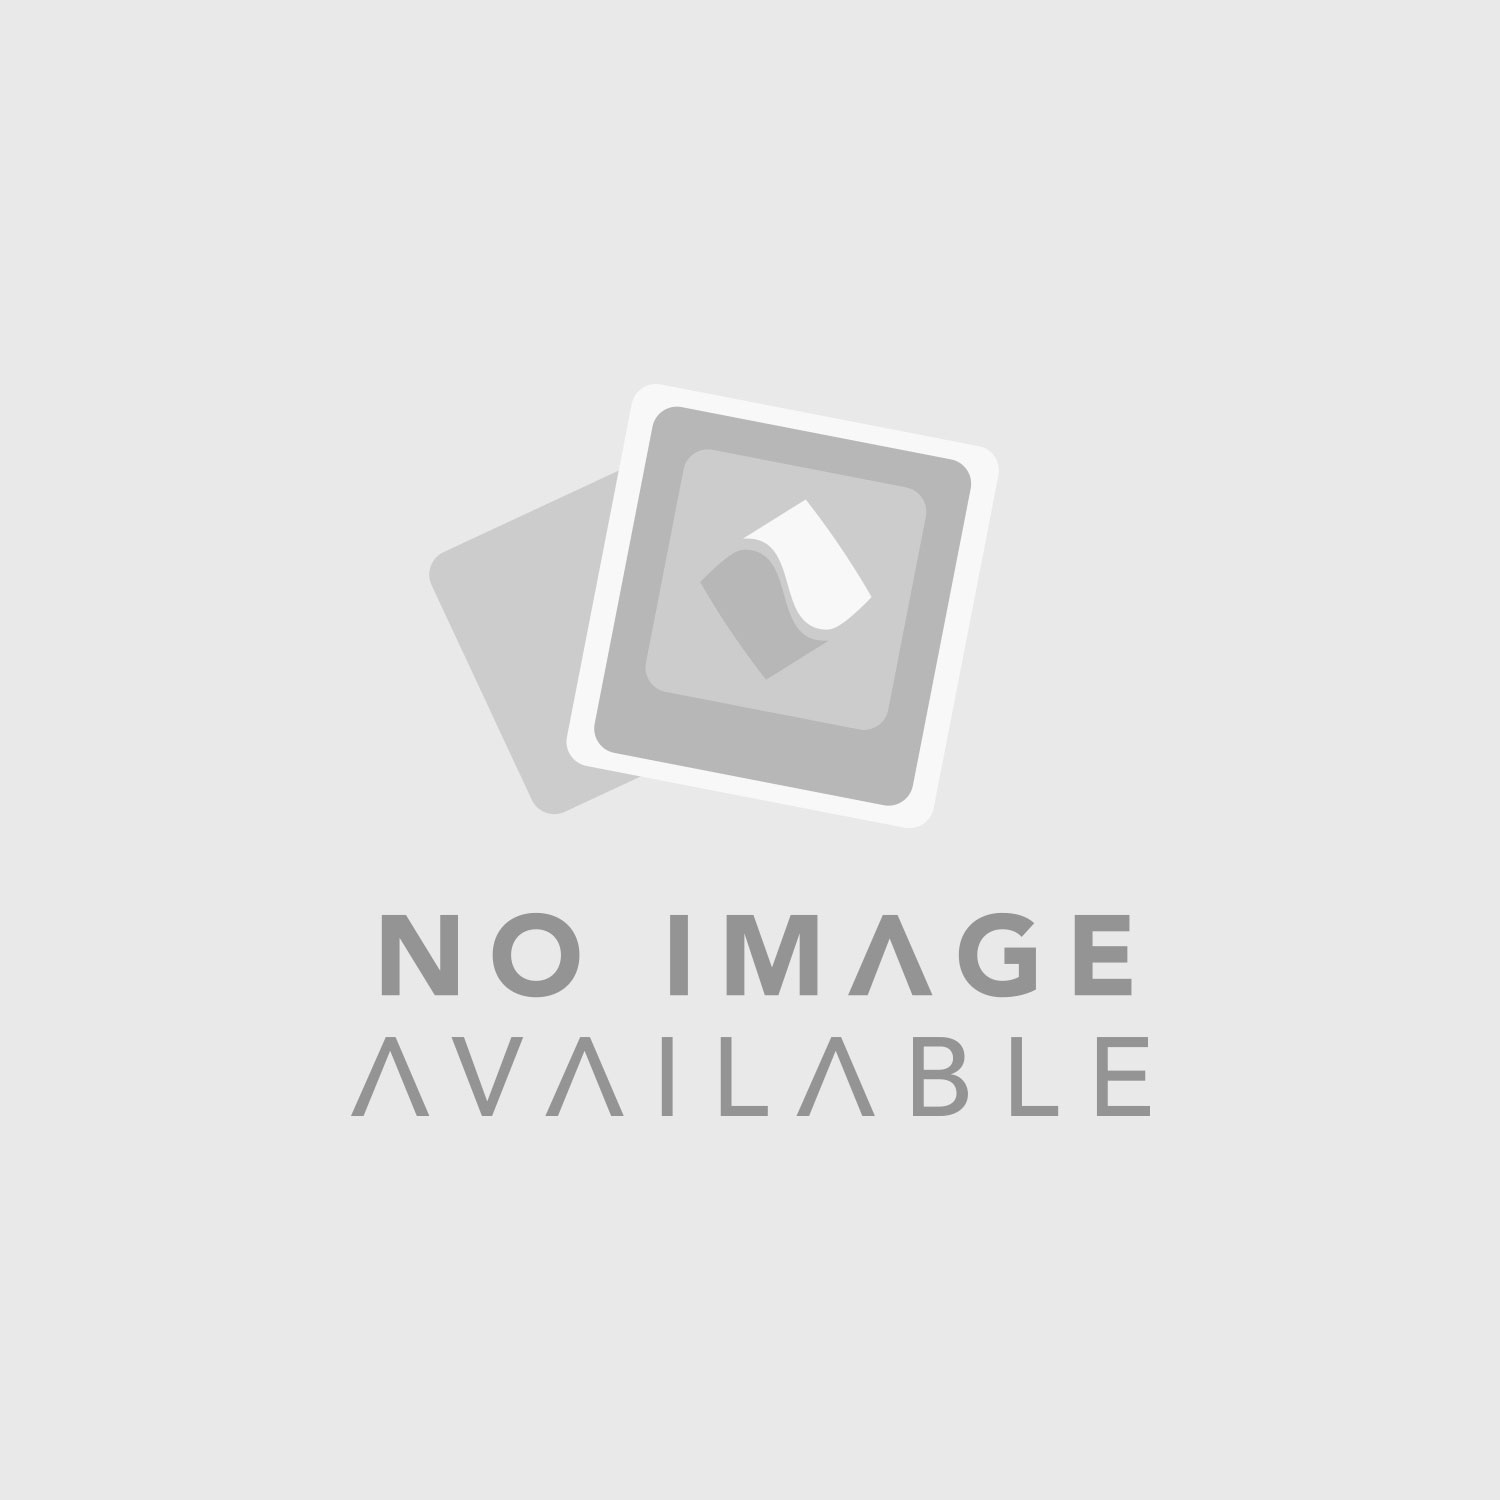 Froggys Fog Neutronic Haze Juice (1 Gallon)